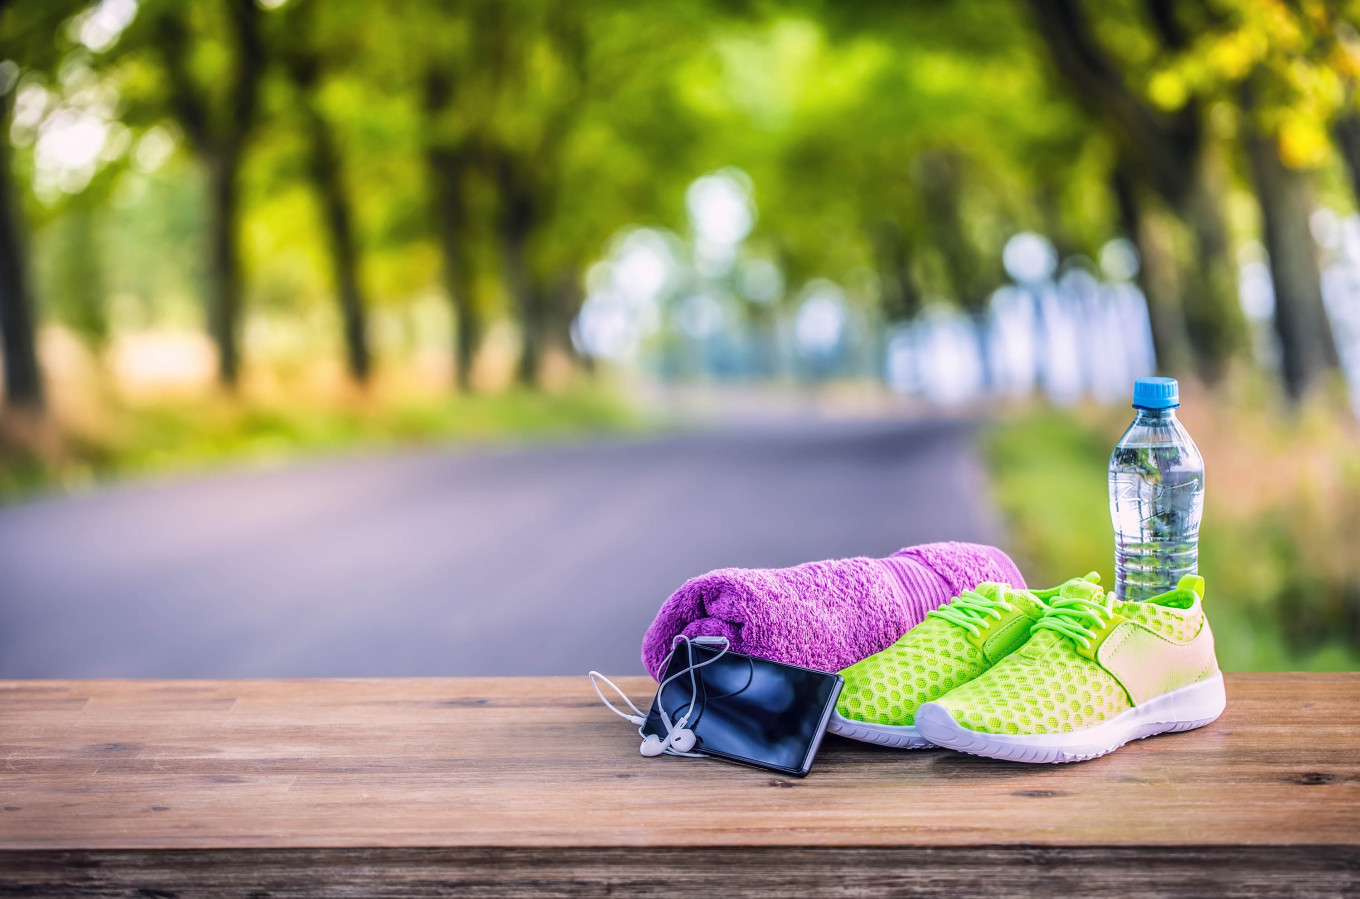 Pandemic or not, people must 'exercise' ― WHO